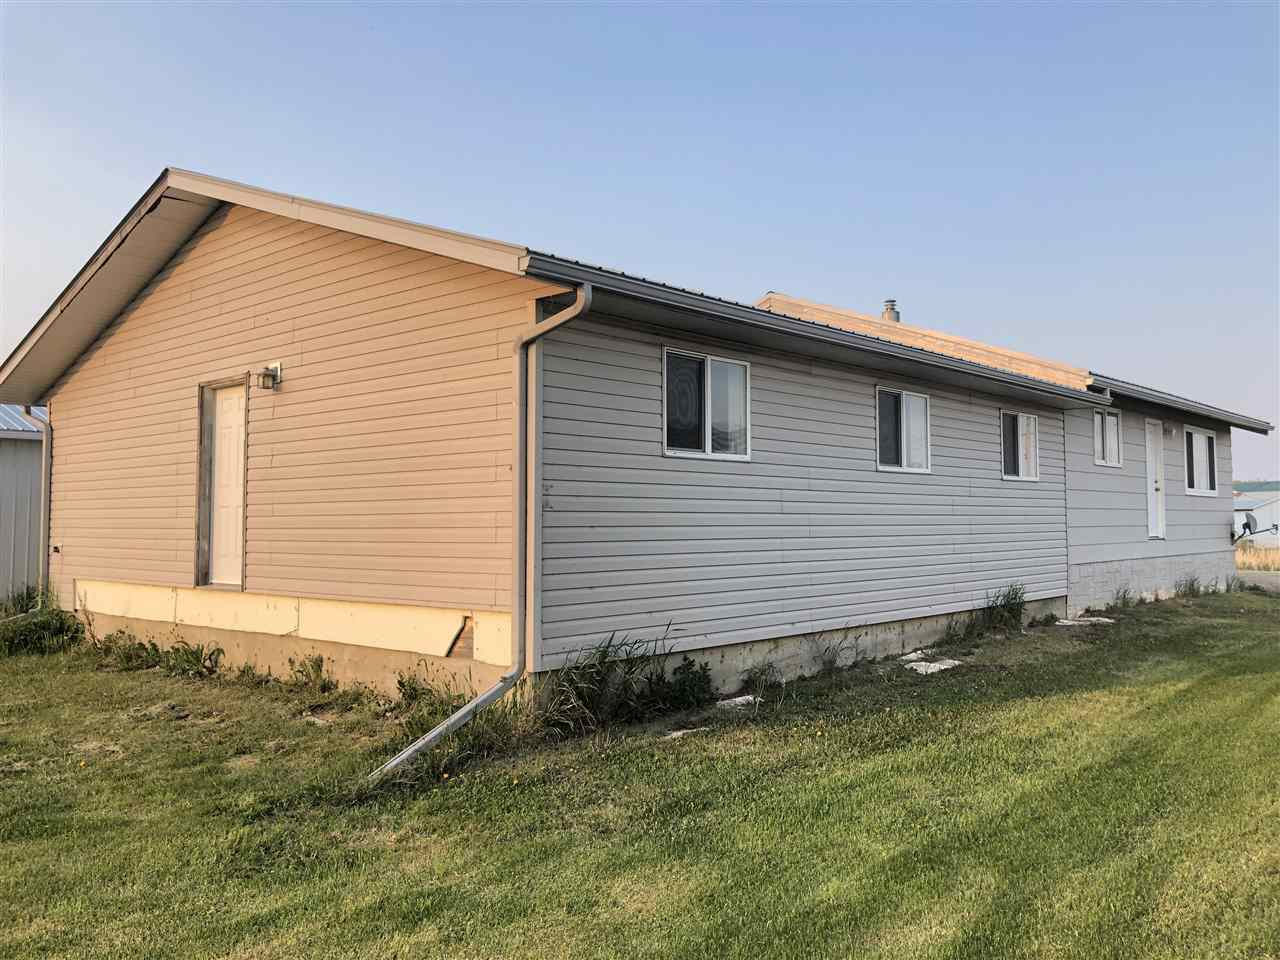 Main Photo: 9121104 2 Highway: Rural Westlock County House for sale : MLS®# E4159552